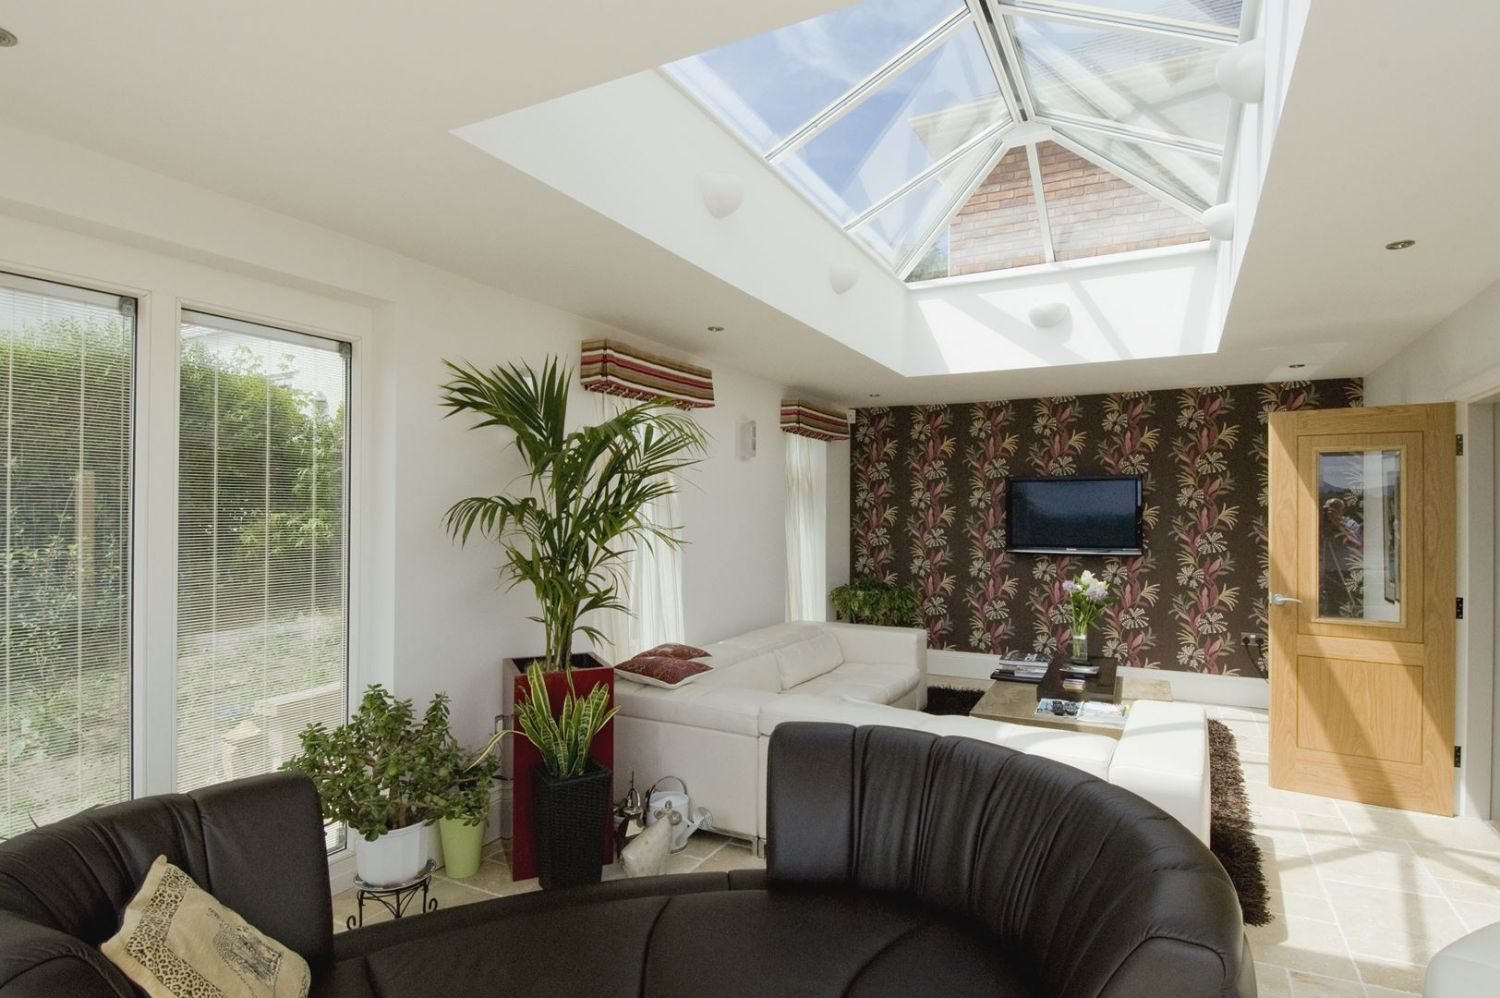 This amazing Orangery Design has dual Bi-Folding Doors to make advantage of the amazing view of Conwy Castle.